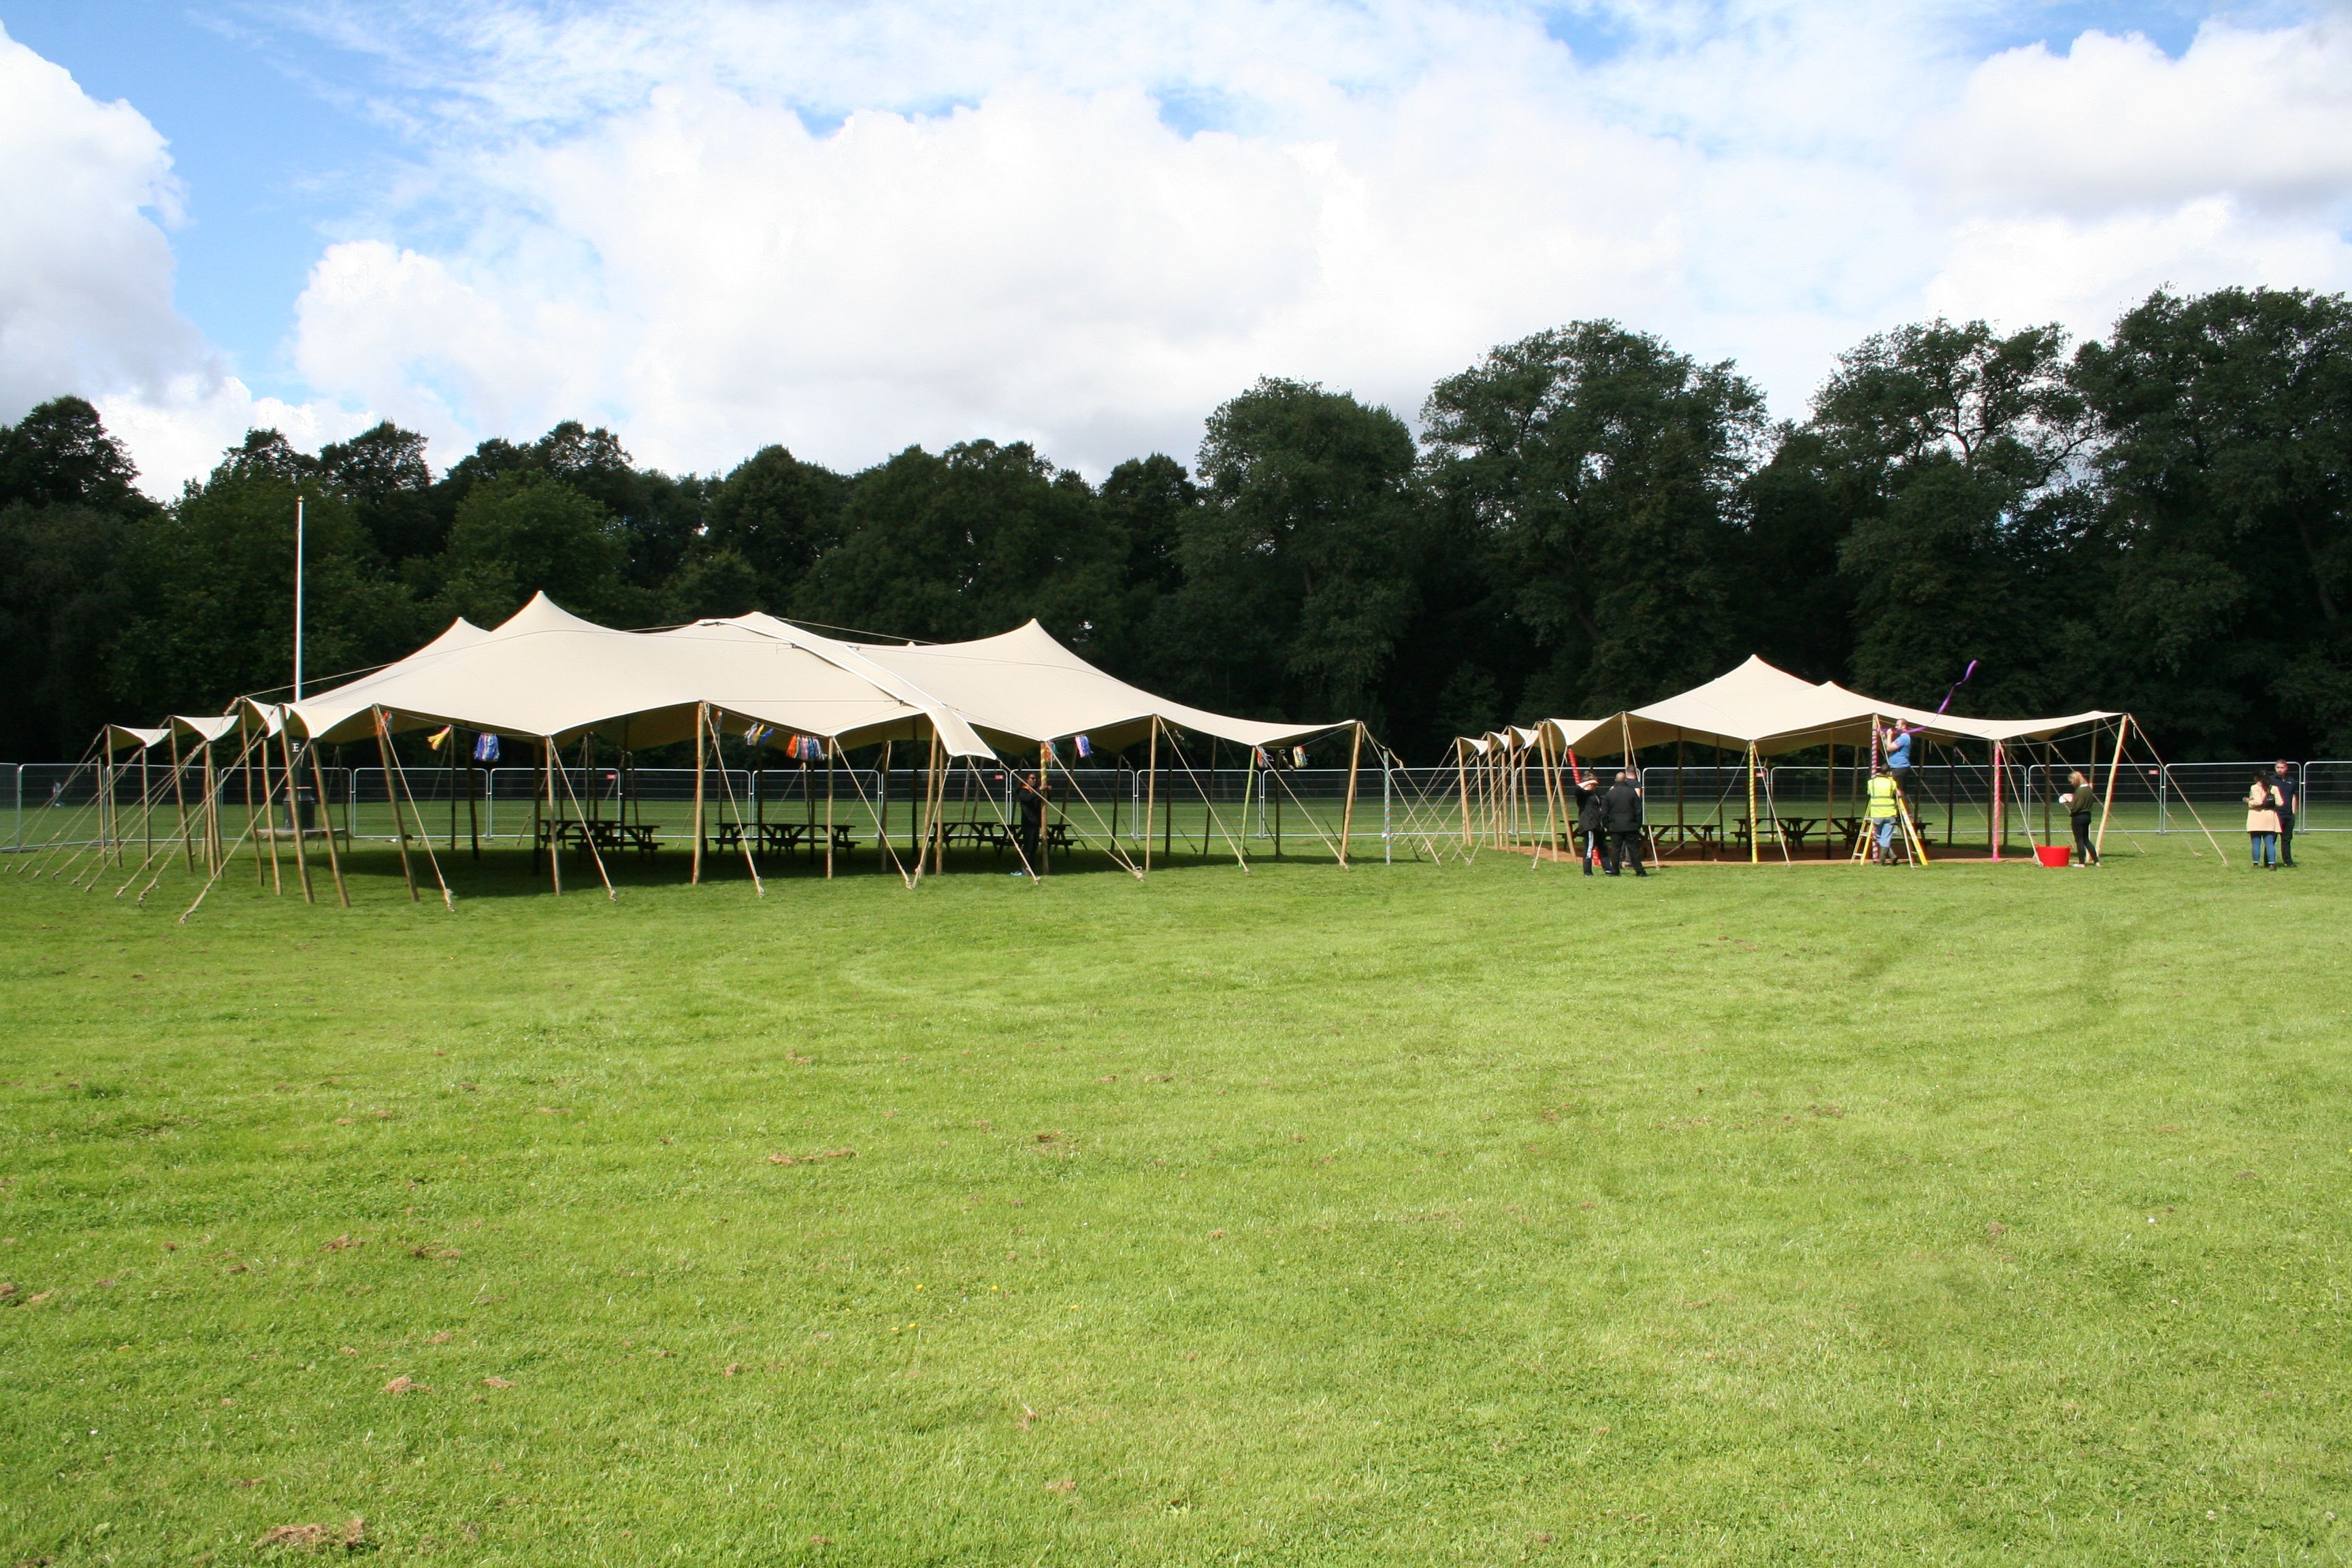 big stretch tent canopies on 10x15m and a 20x15m stretch tent wooden poles stretch tent hire & big stretch tent canopies on 10x15m and a 20x15m stretch tent ...